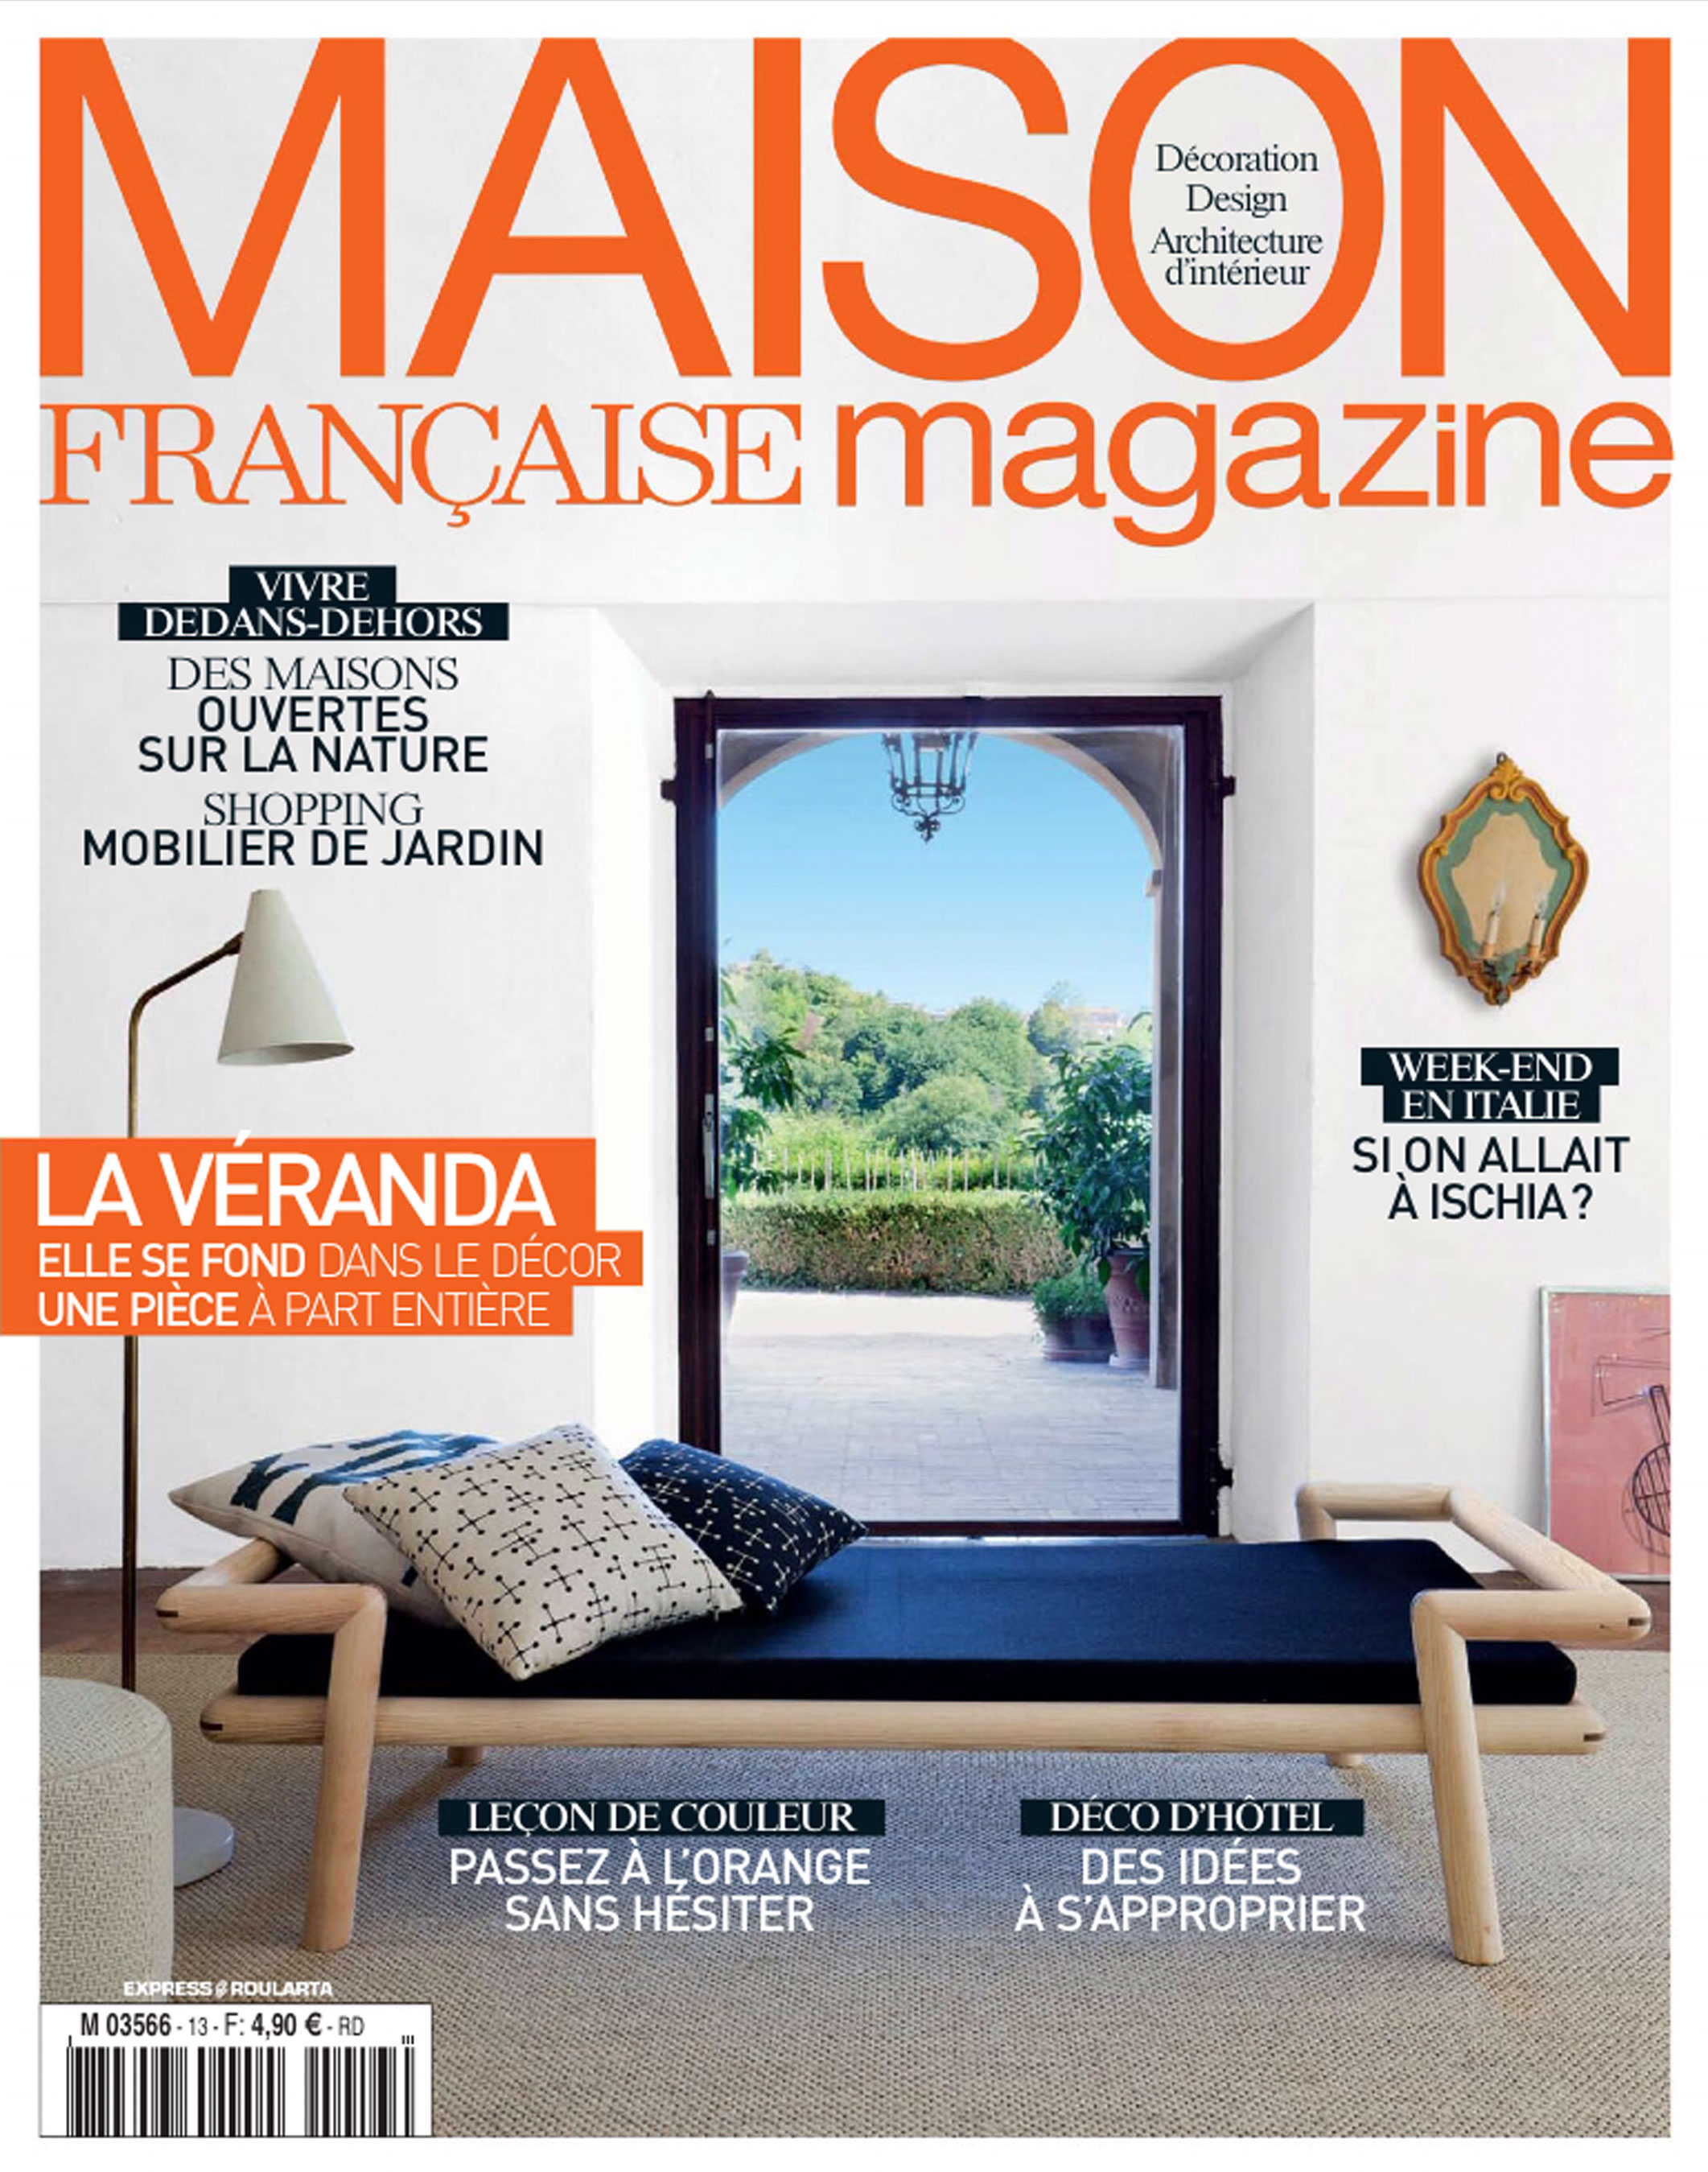 maison francaise magazine nicola gallizia. Black Bedroom Furniture Sets. Home Design Ideas